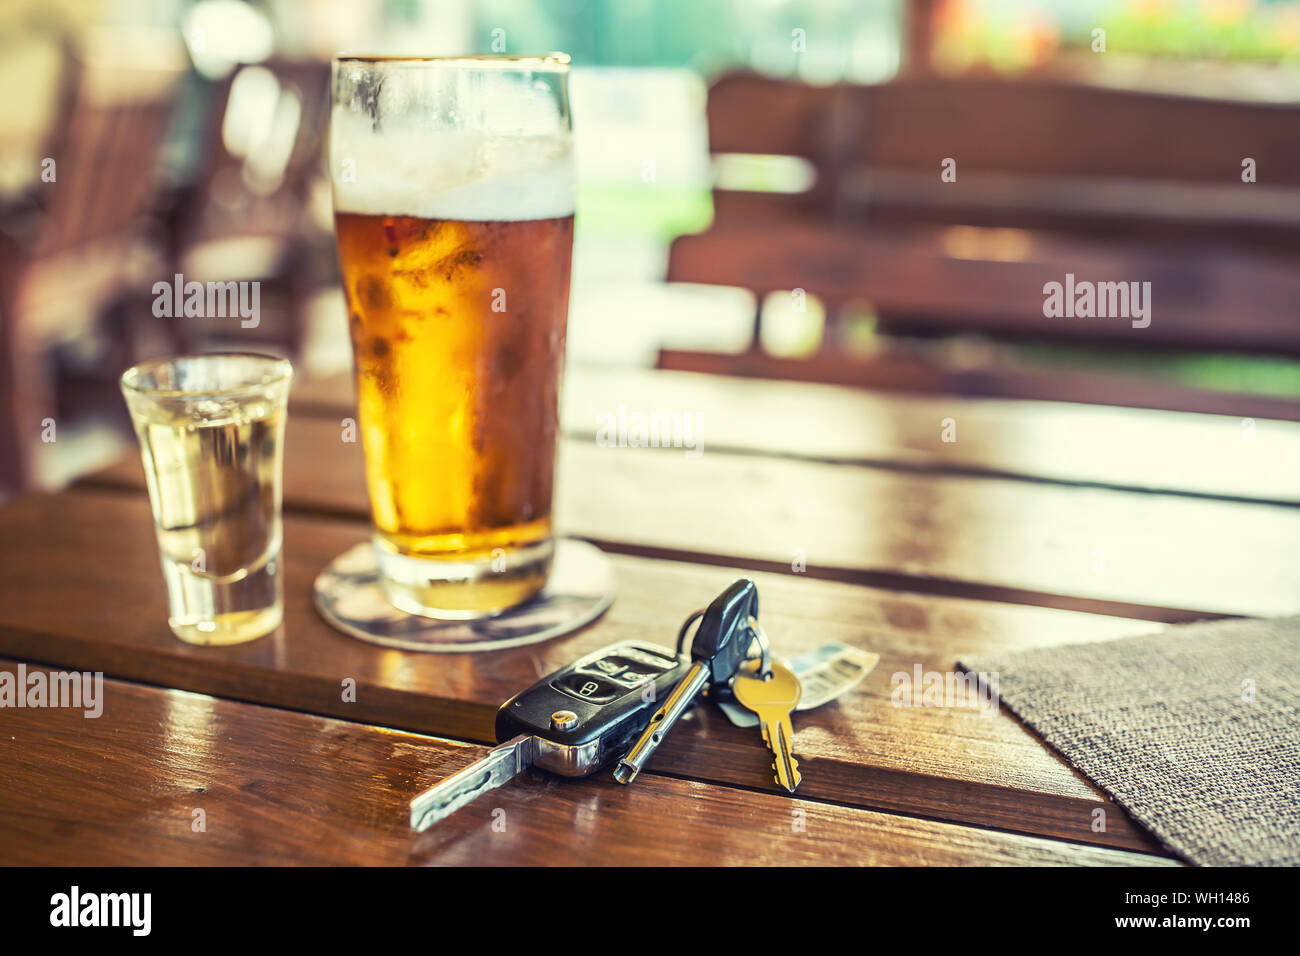 Car keys and glass of beer or distillate alcohol on table in pub or restaurant Stock Photo